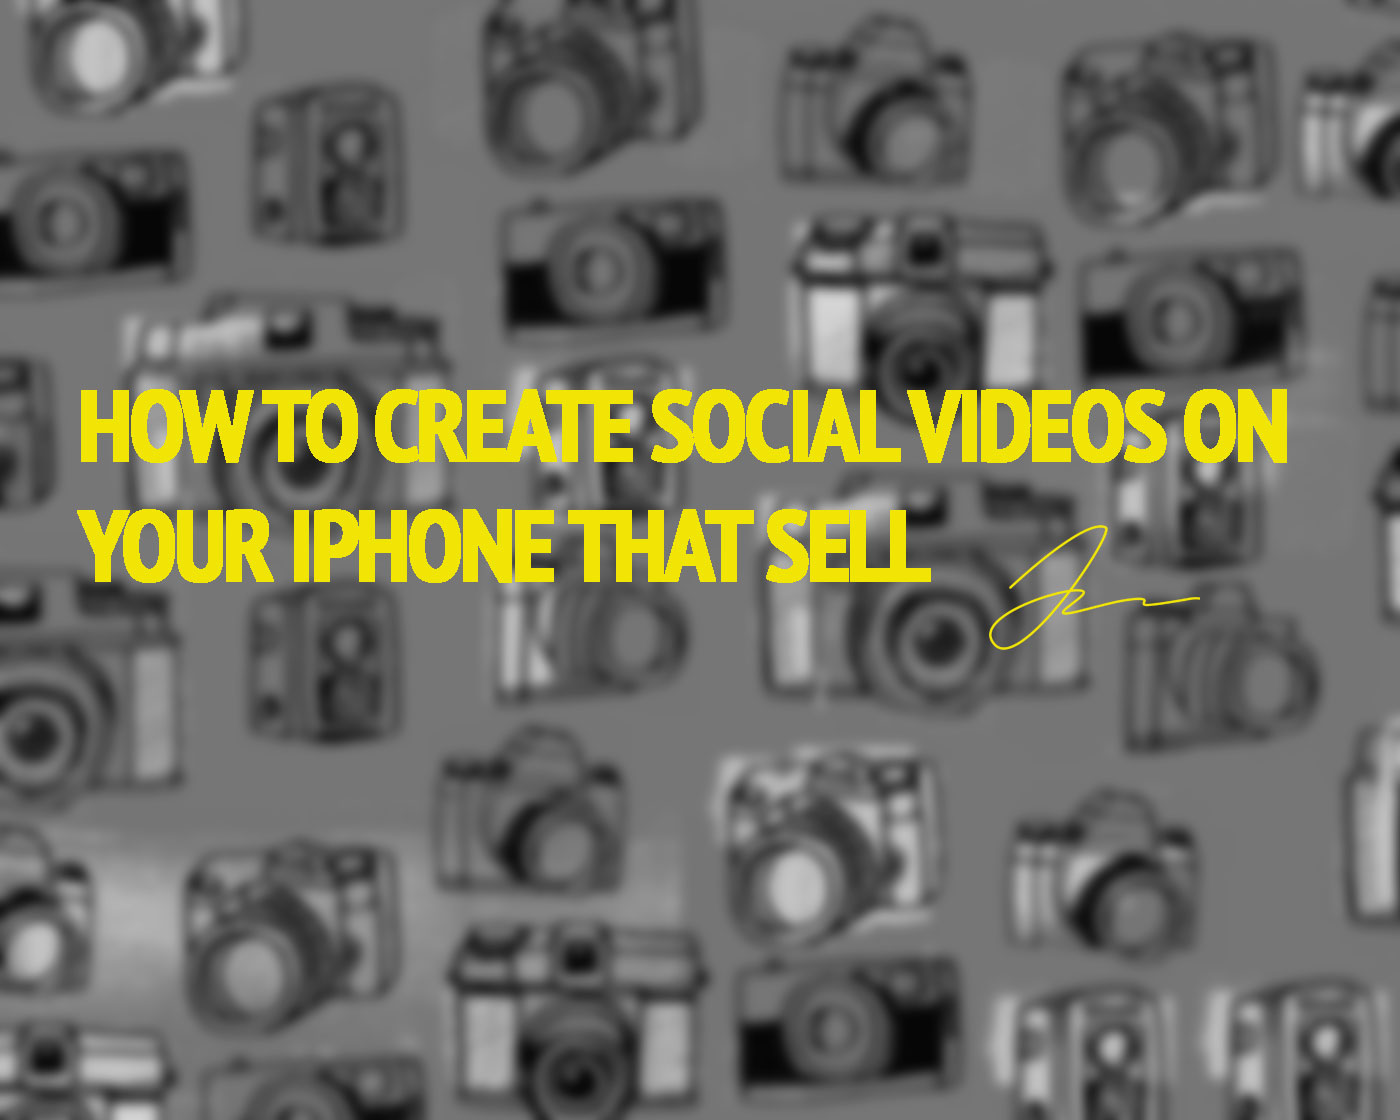 How To Create Social Videos On Your iPhone That Sell